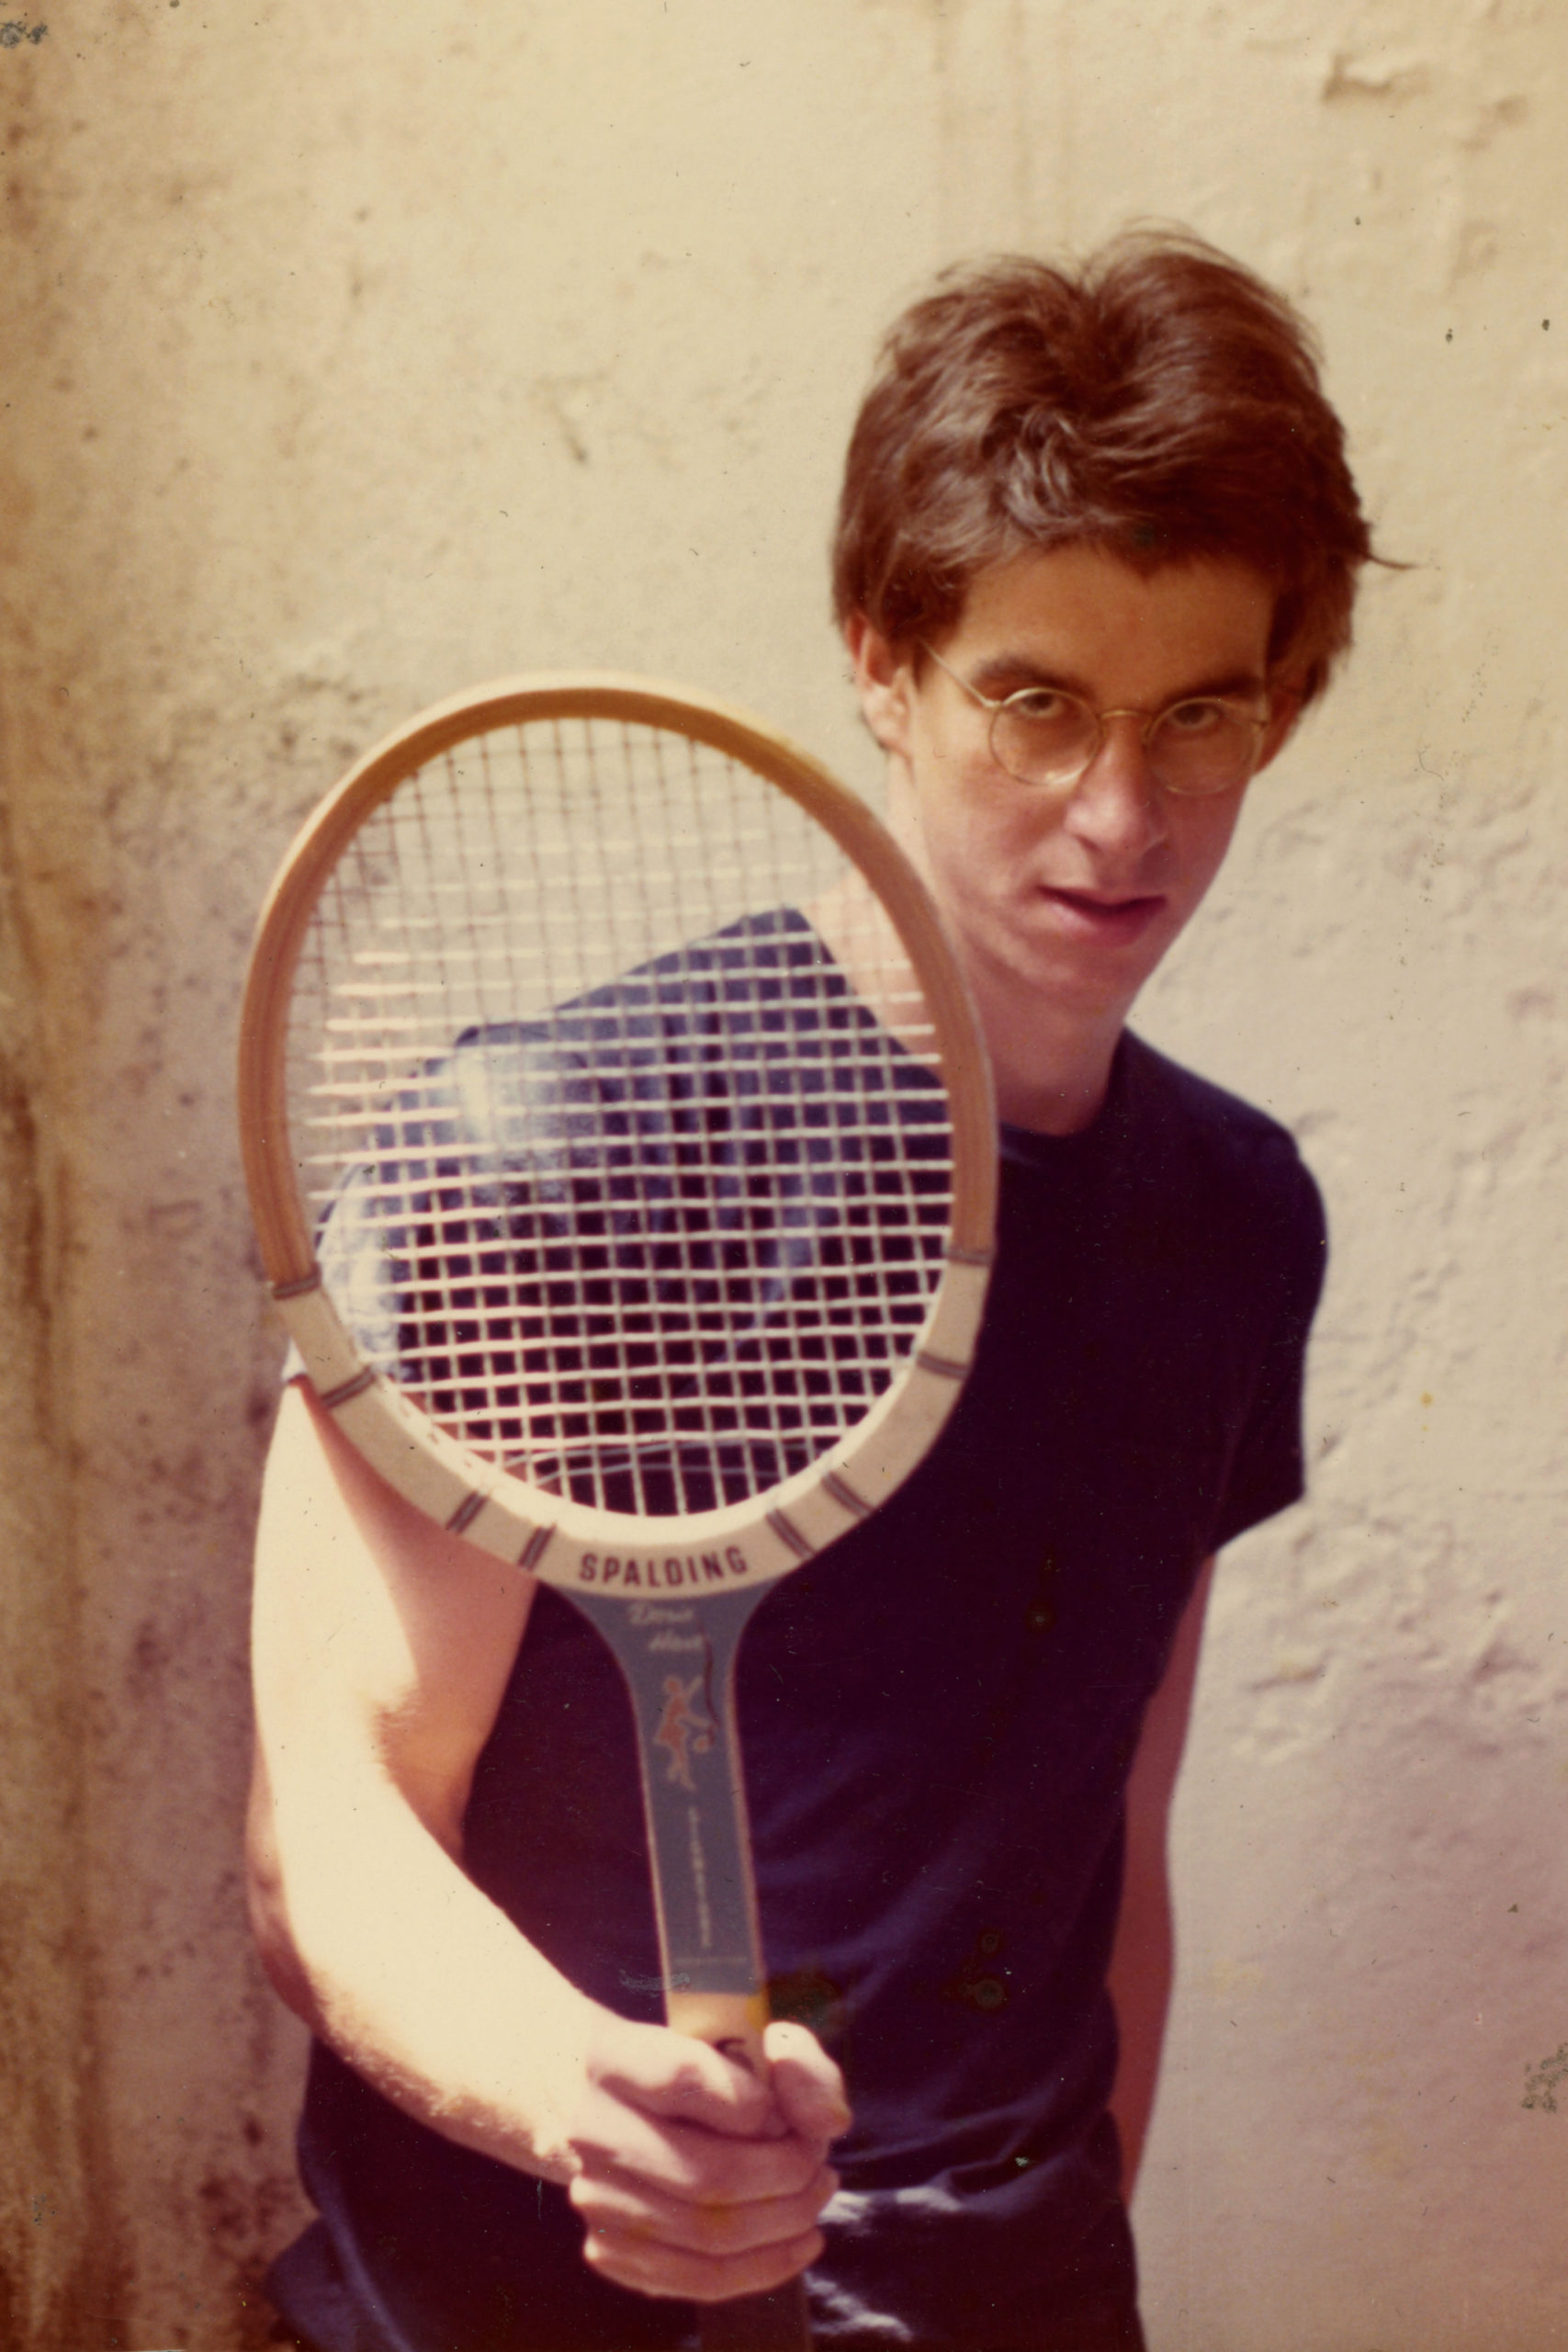 Rich posed me for this photo with tennis racket